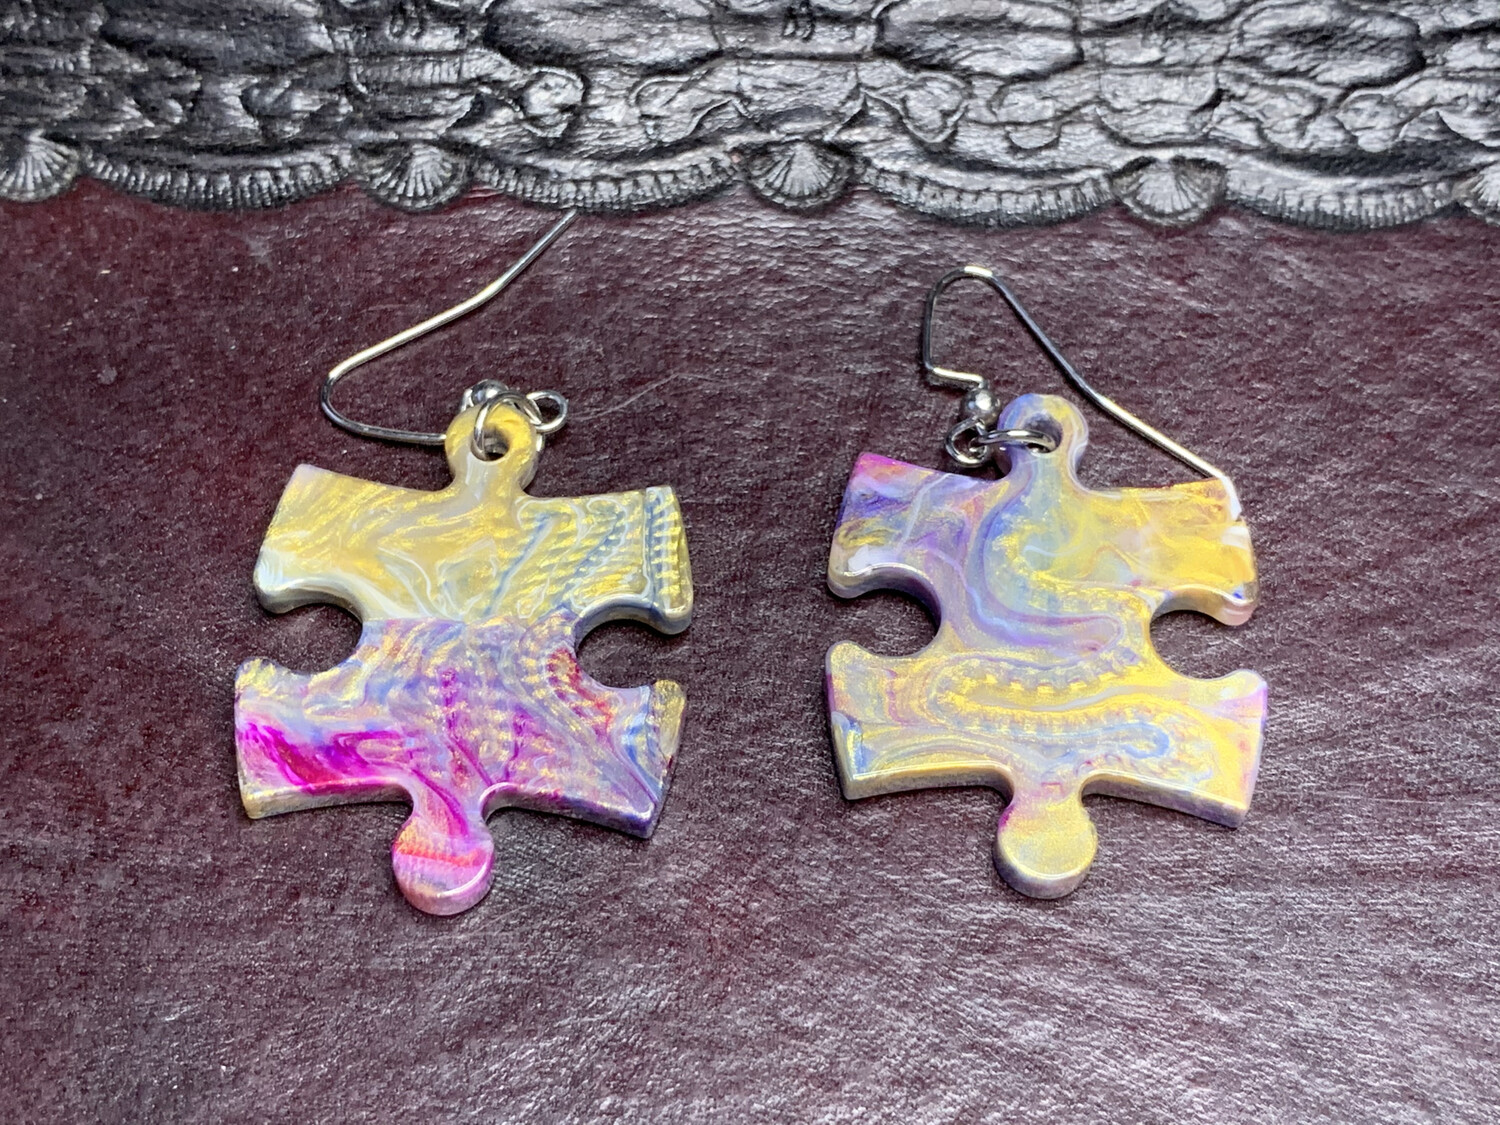 Puzzle Piece Puzzle Earrings - Chessex Dice Style Festive - Gold, Blue, Magenta